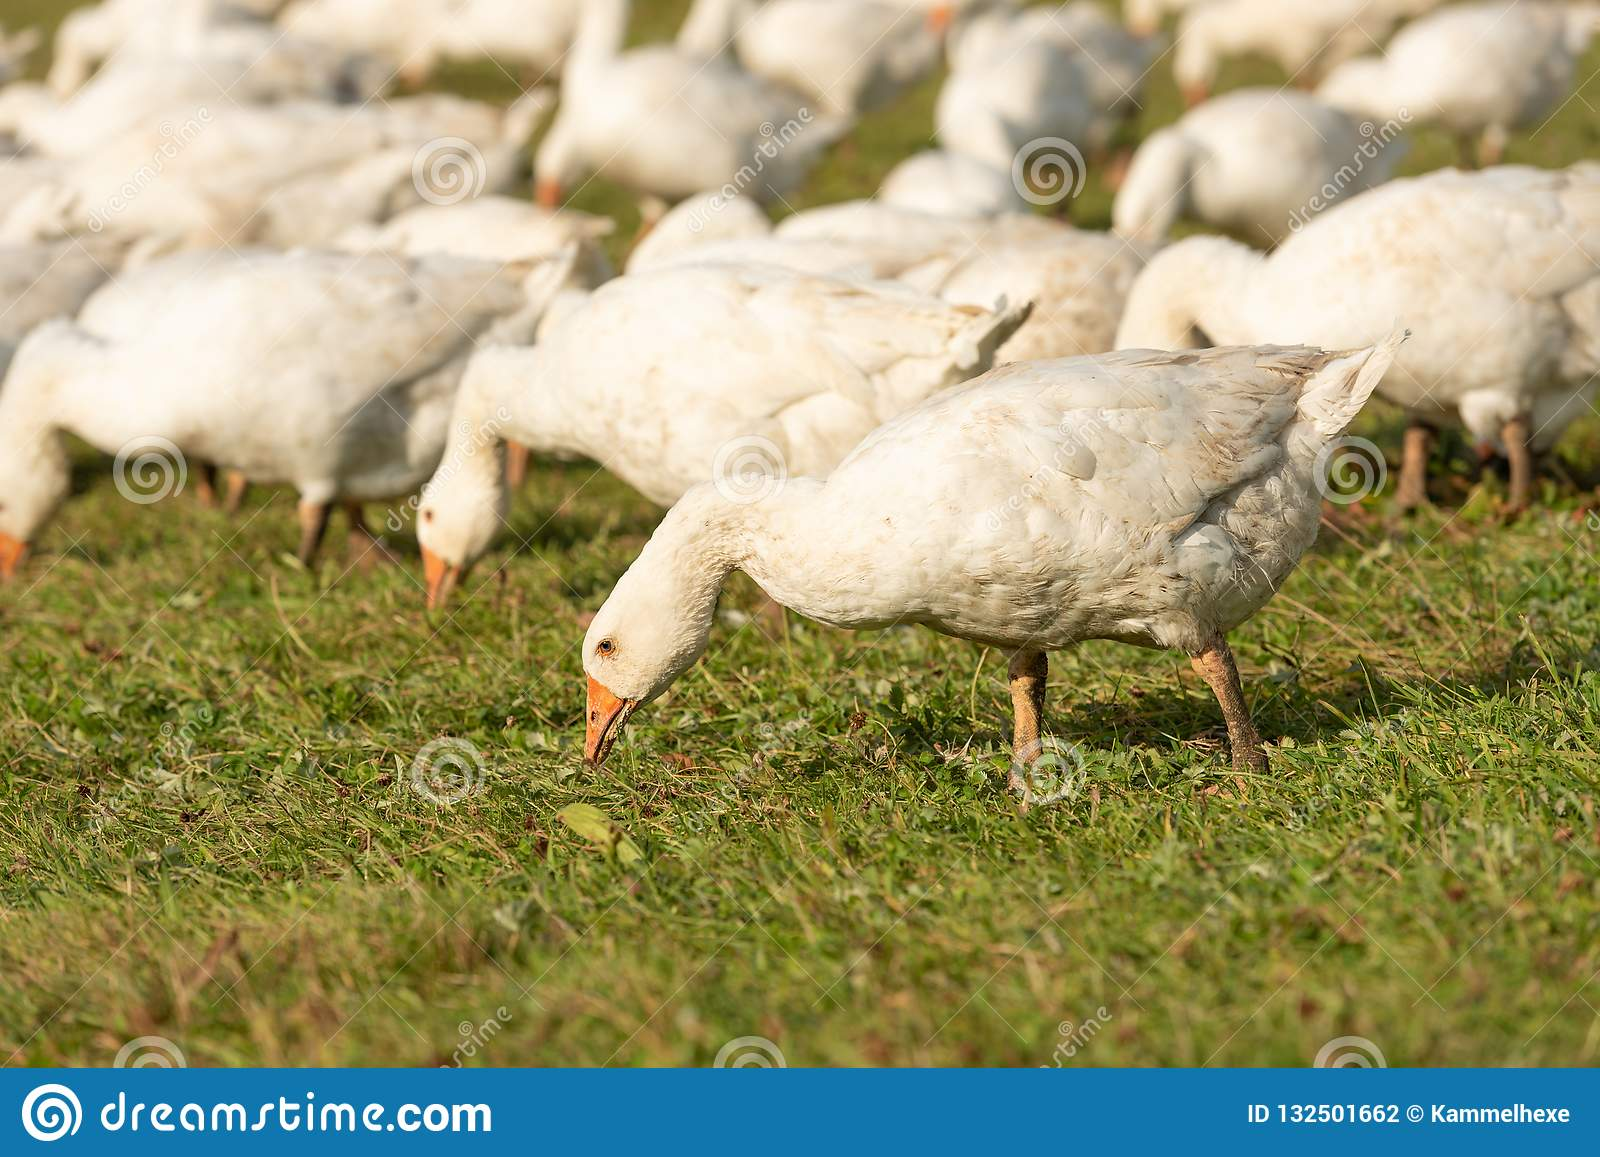 Geese pecking forage from the grass